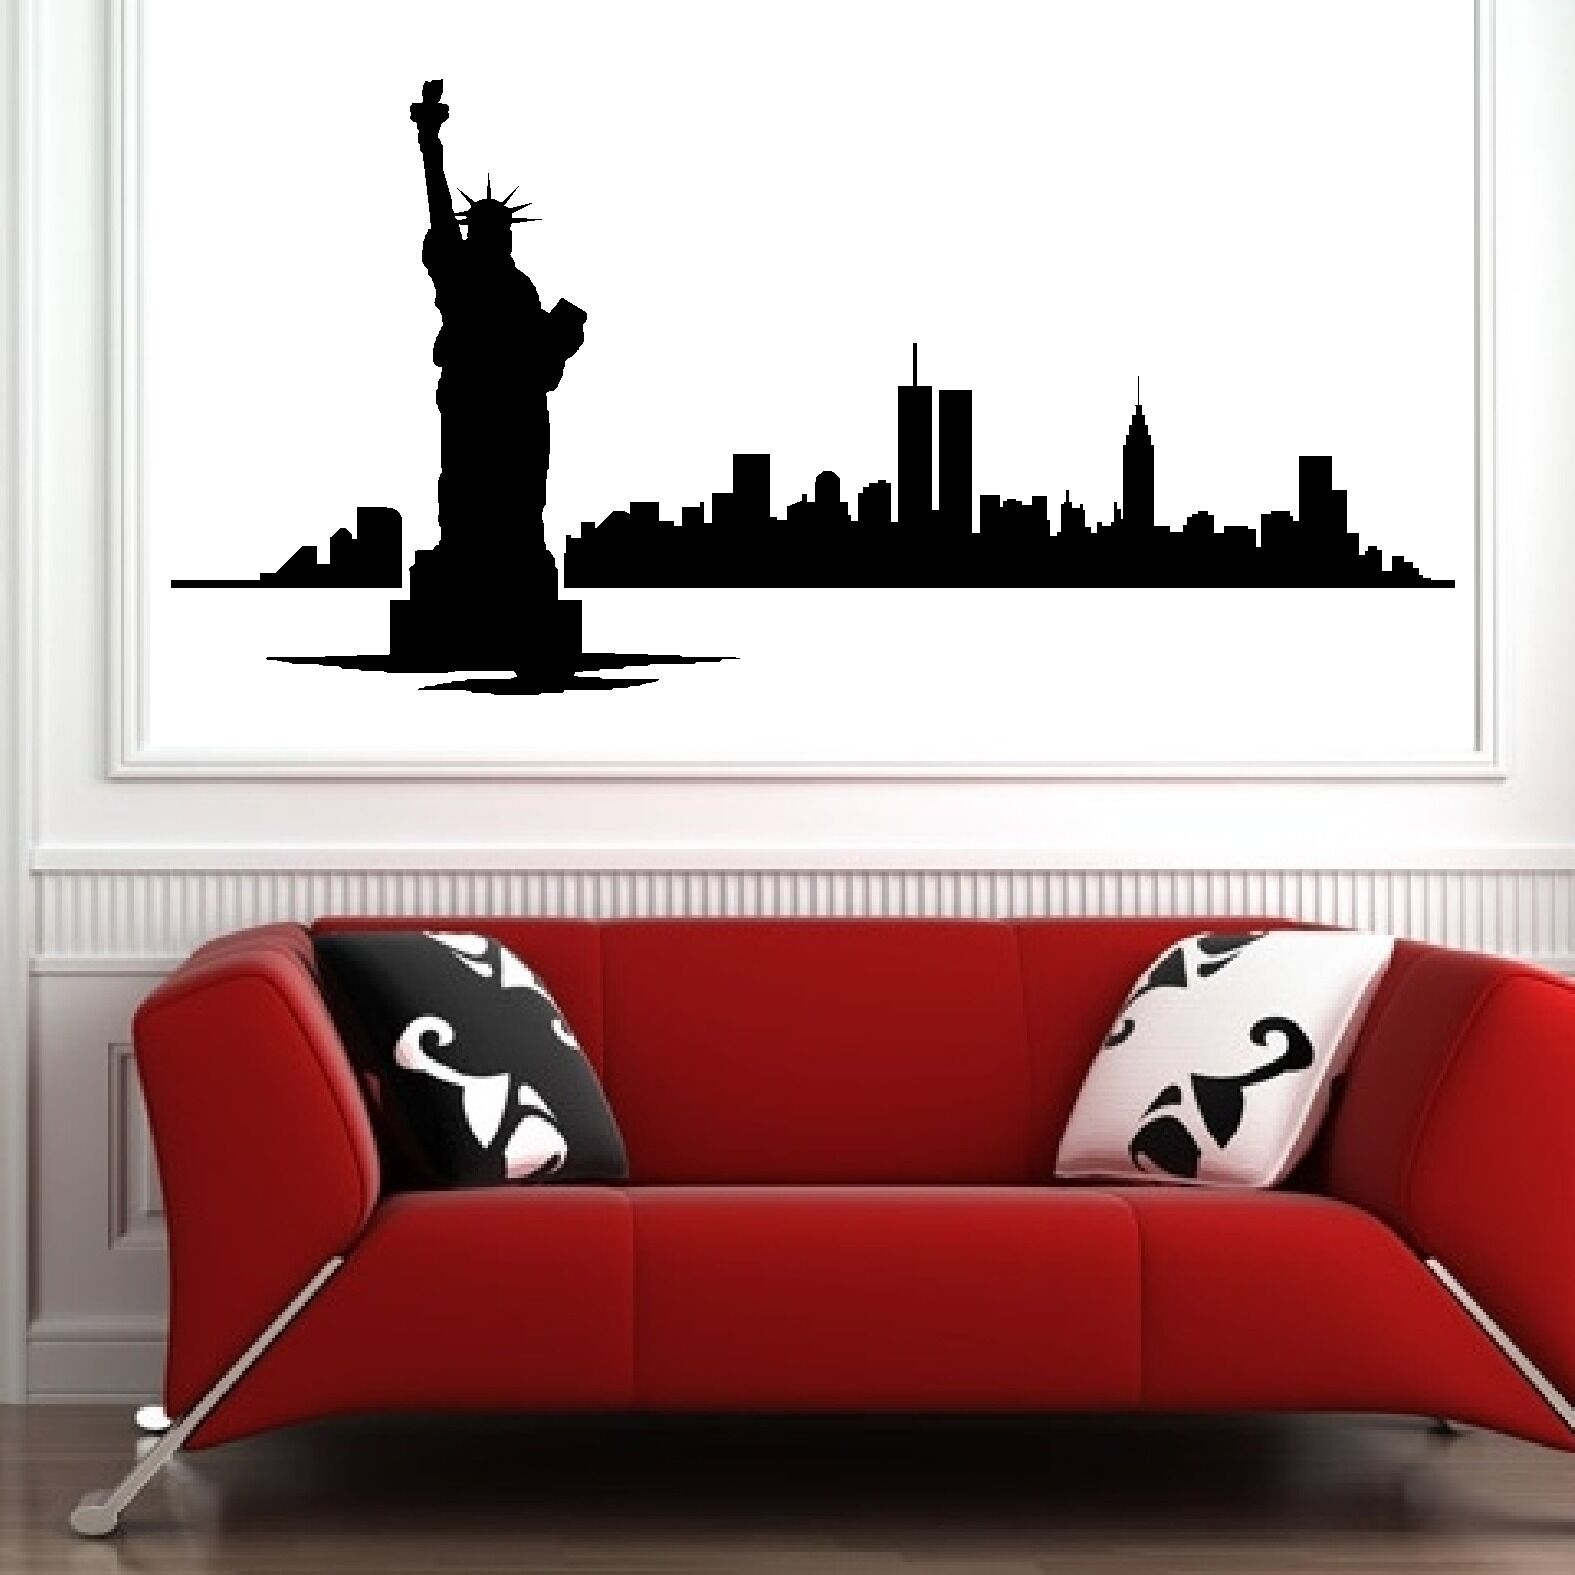 Modern Vinyl Wall Art New York City Big Apple Skyline Silhouette Wall Art